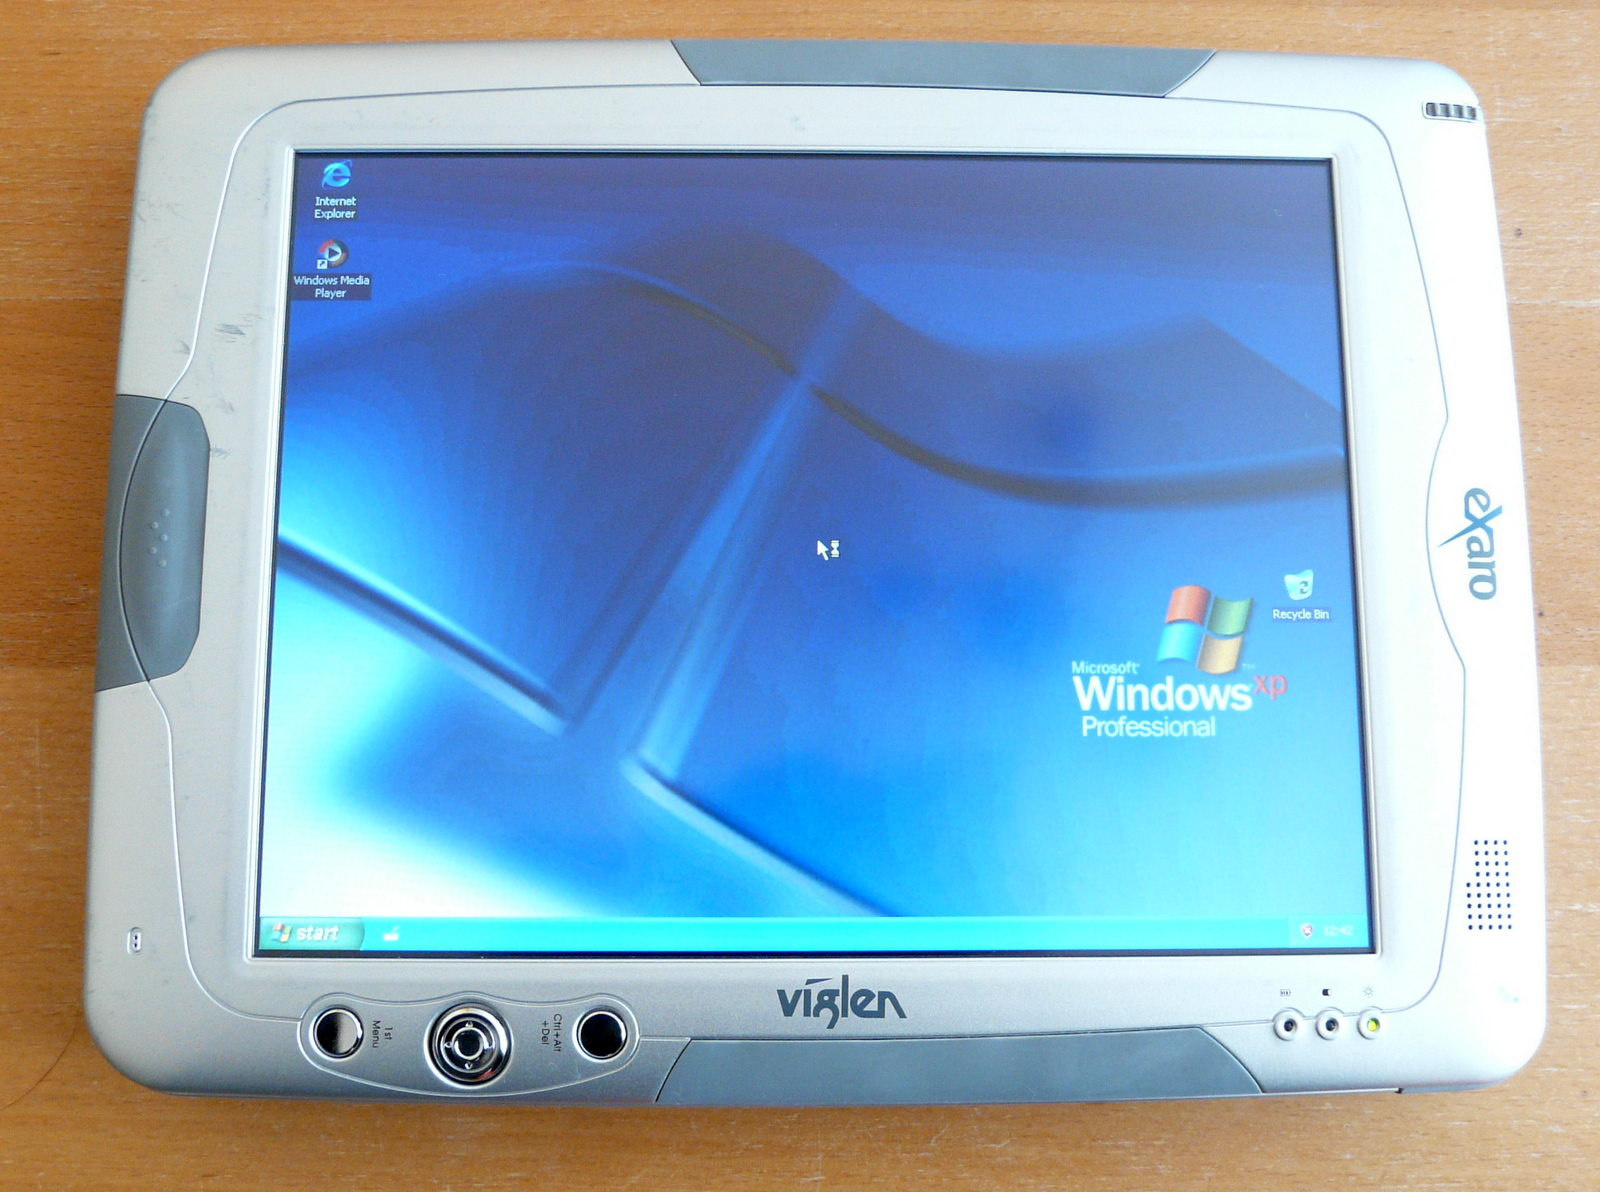 Microsoft windows xp tablet pc edition 2018 corporate sp2 integr